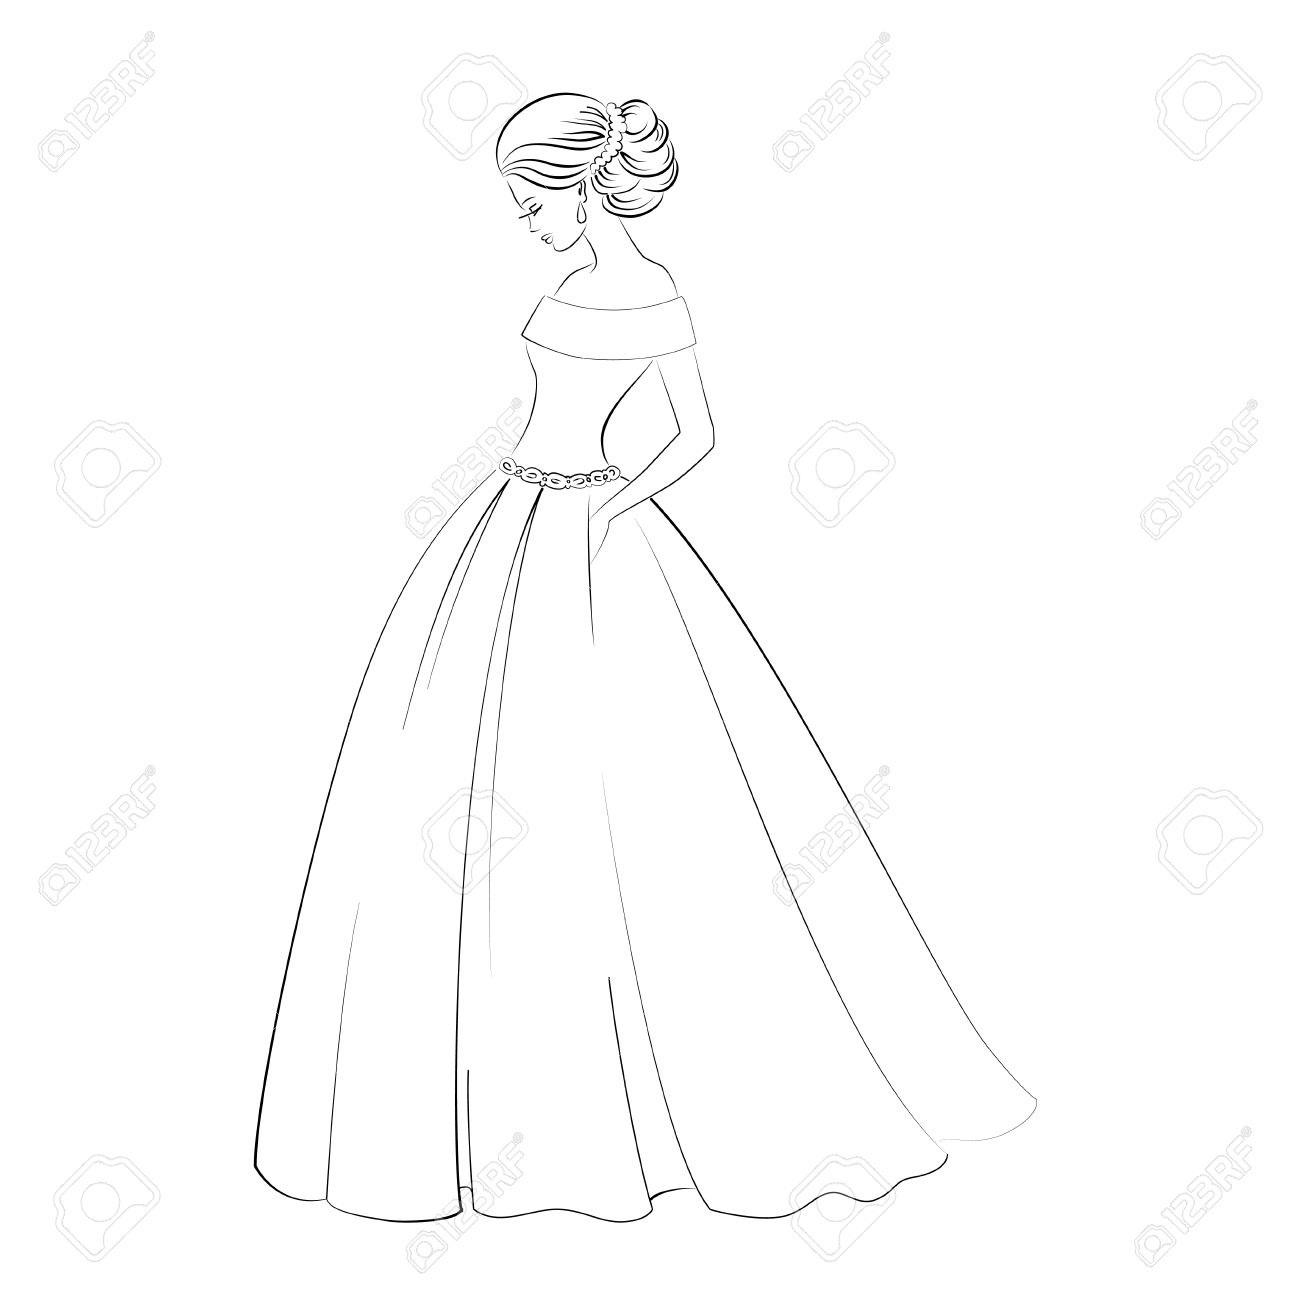 Outline Wedding Dress